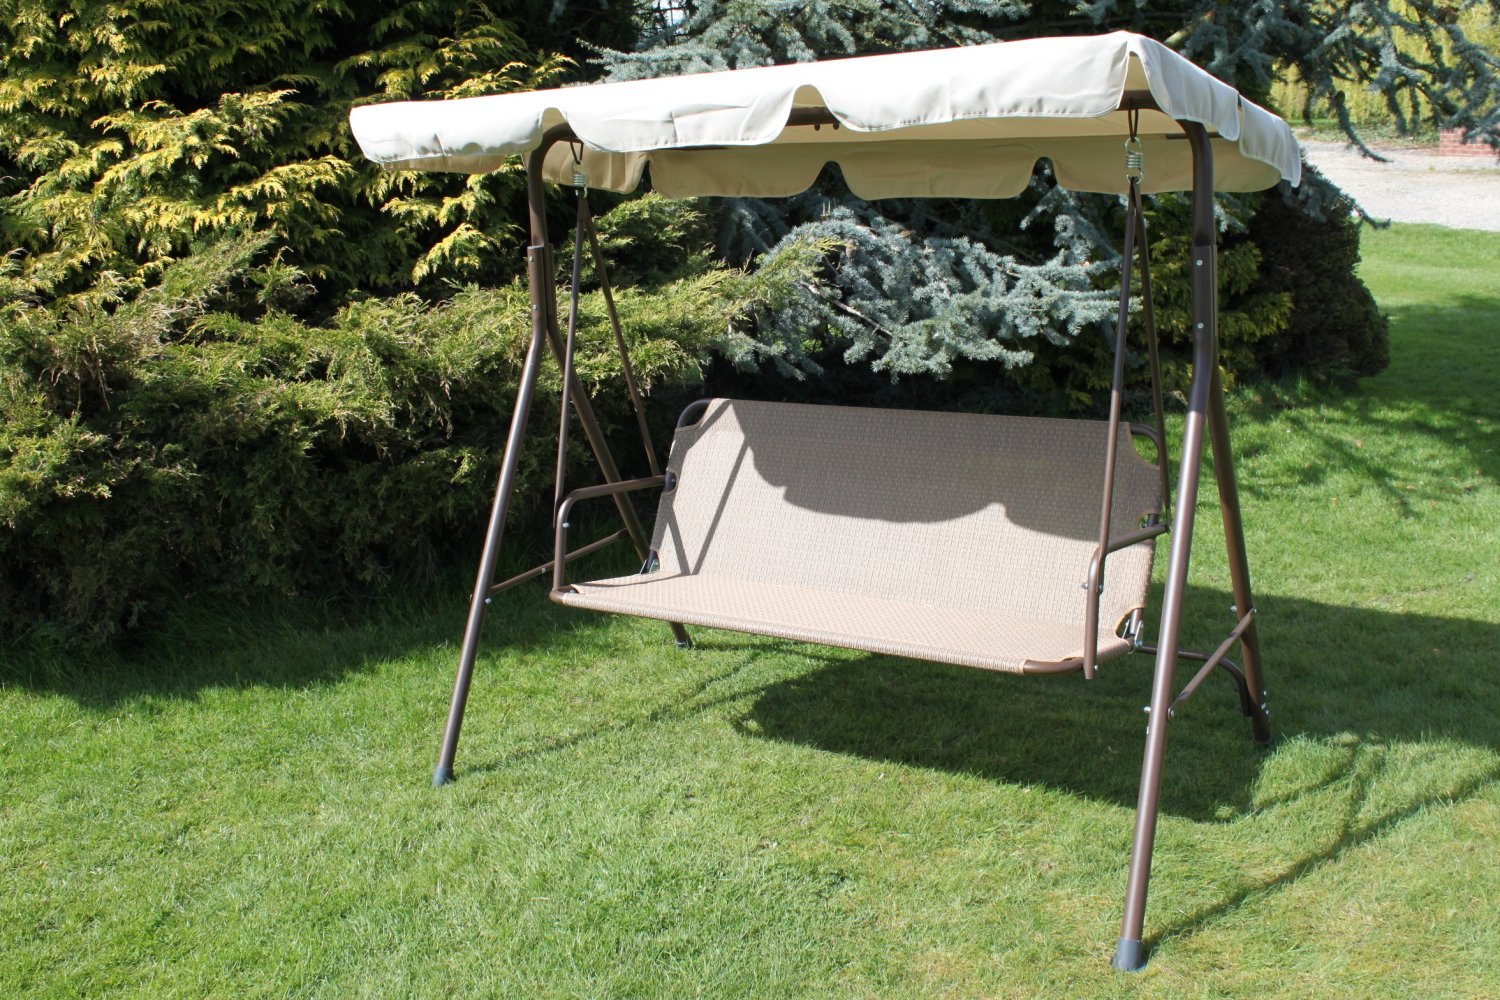 outdoor g seater covers oxbridge green cover outdoorvalue value swing hammock